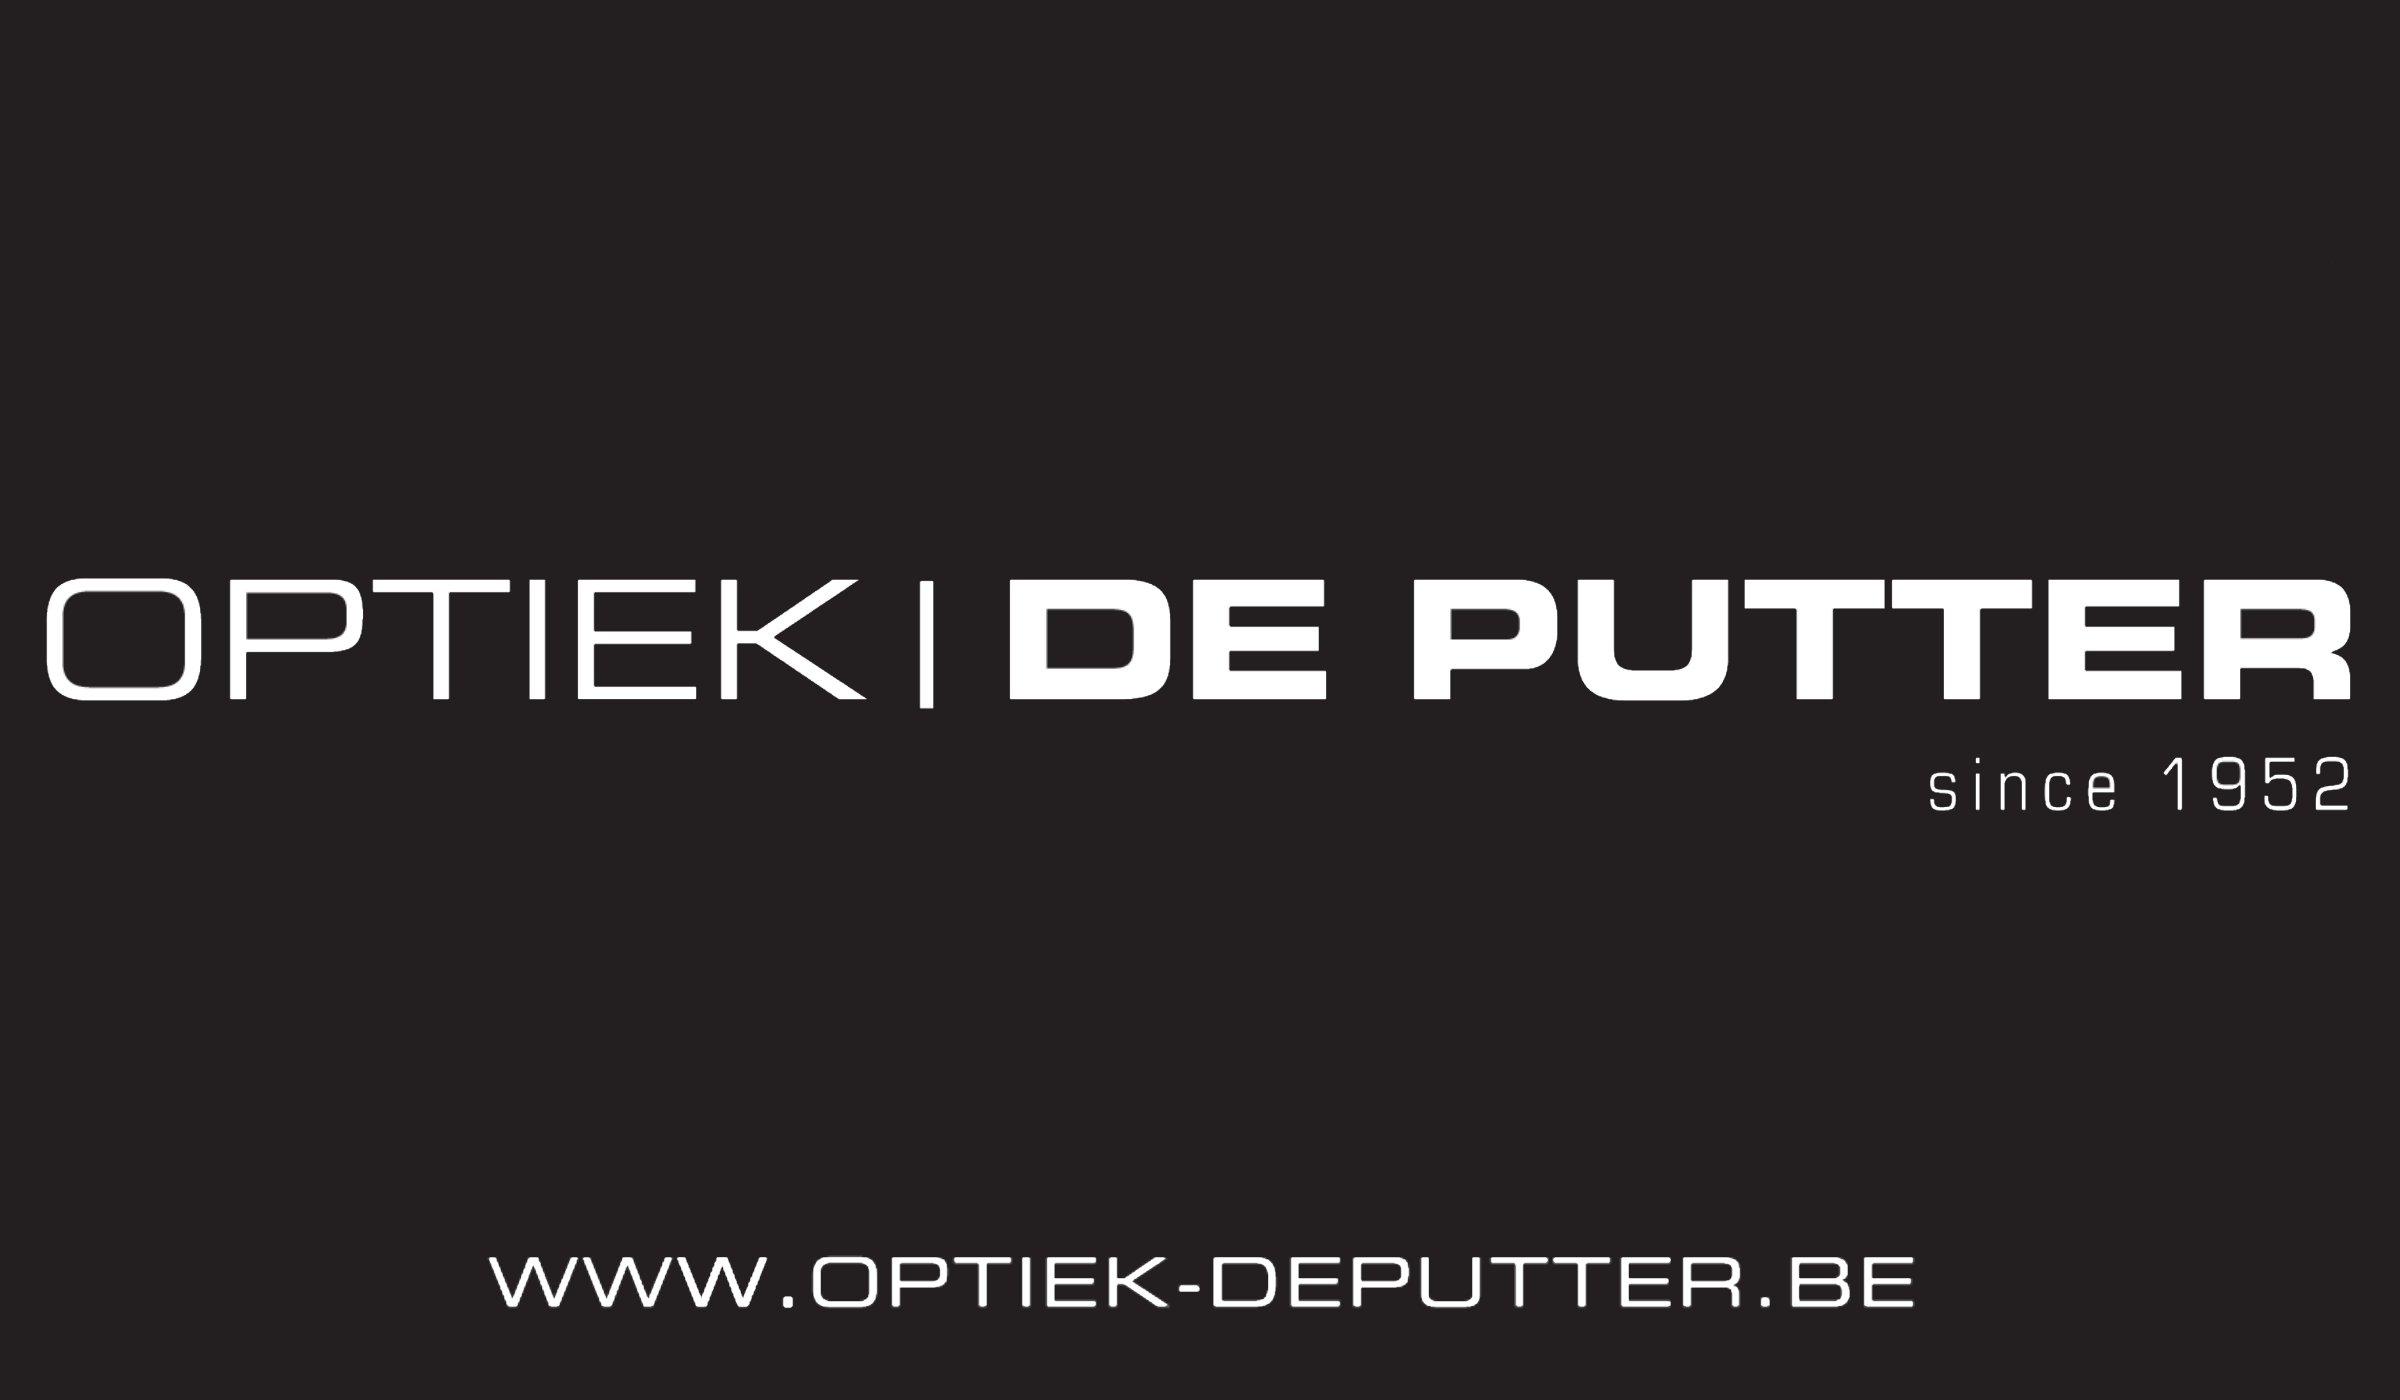 Optiek de Putter